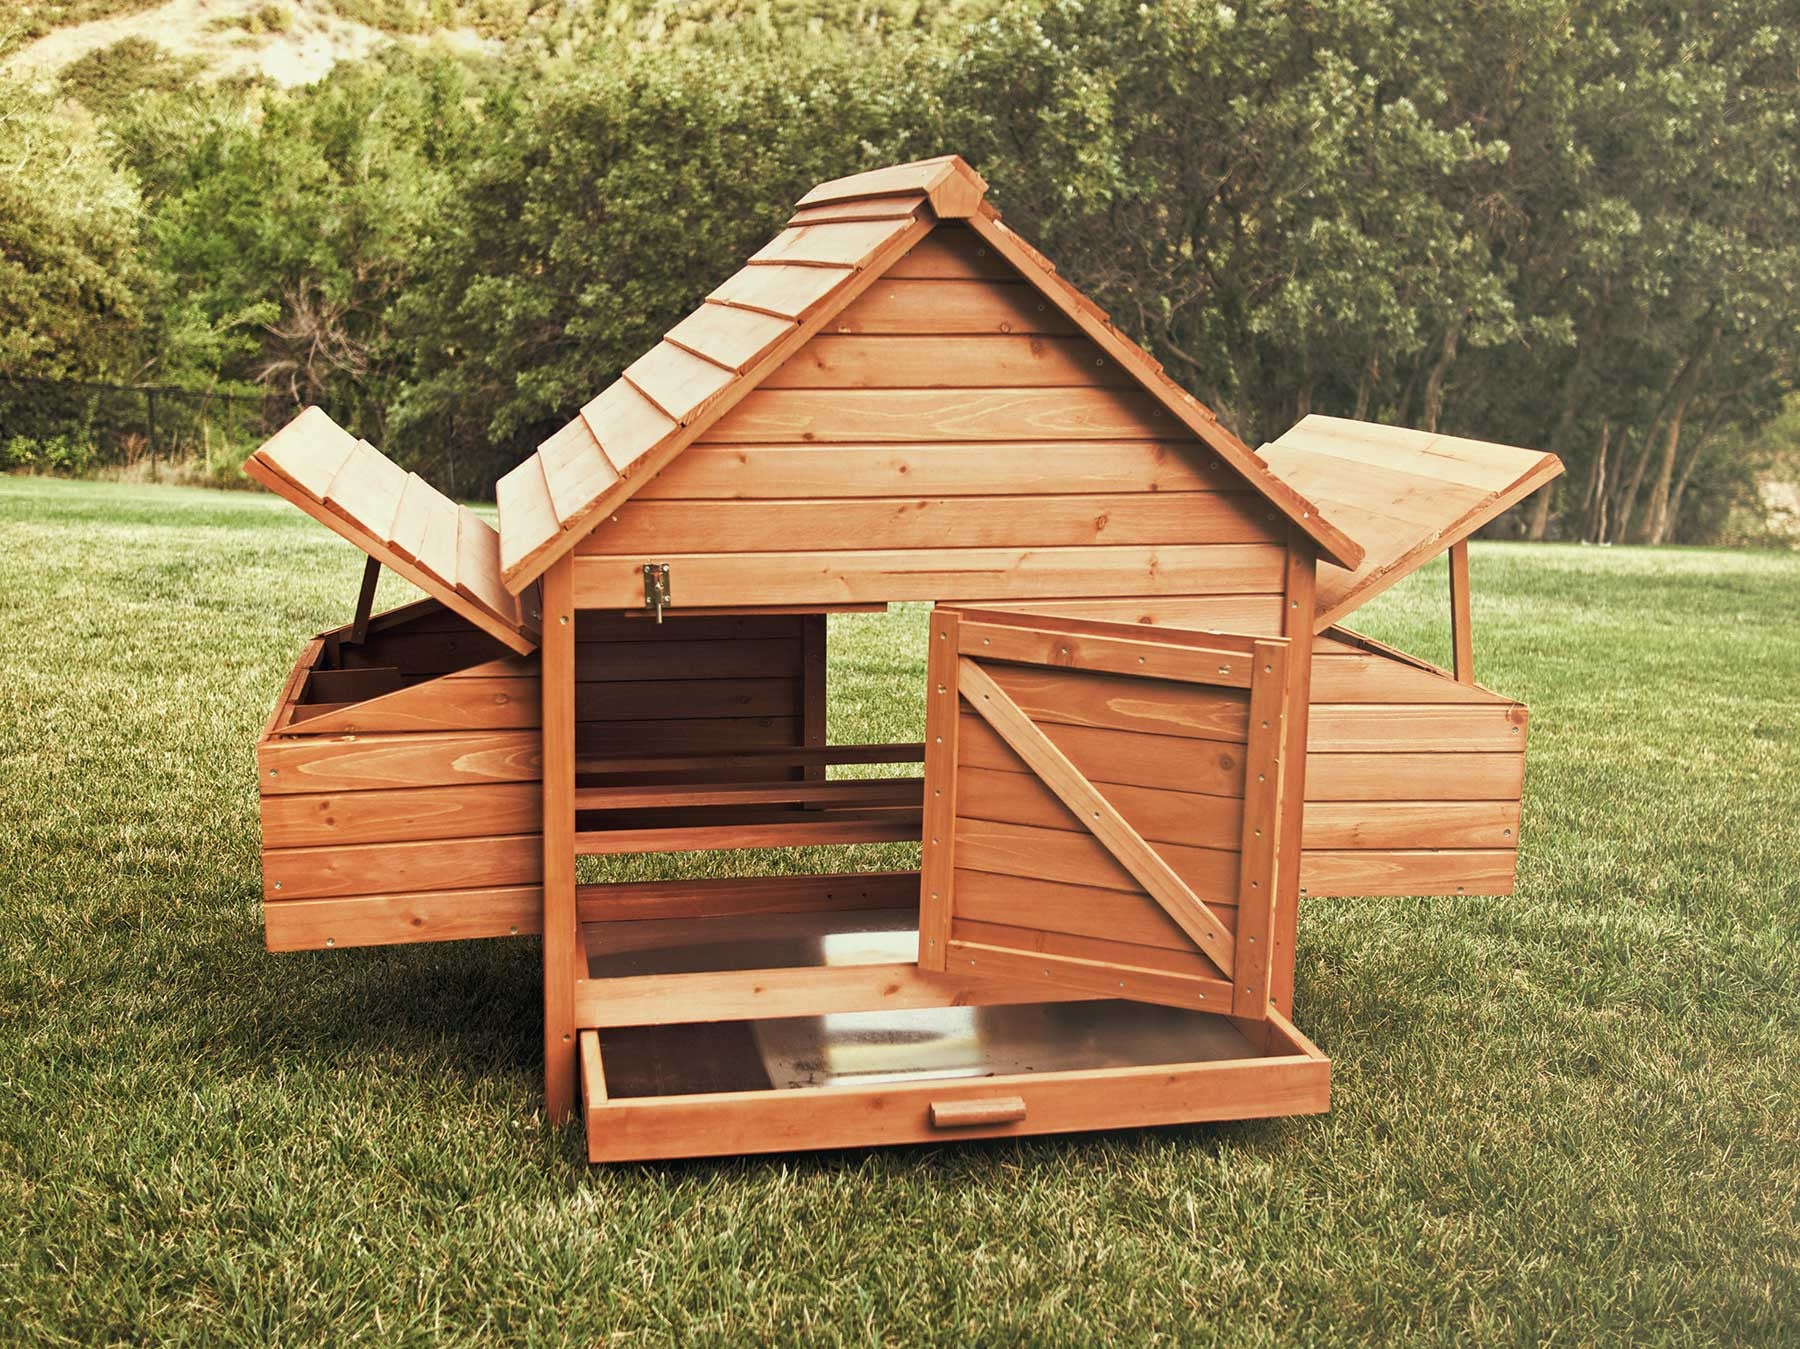 Rambler chicken coop, showing the internal space and sliding mess pan